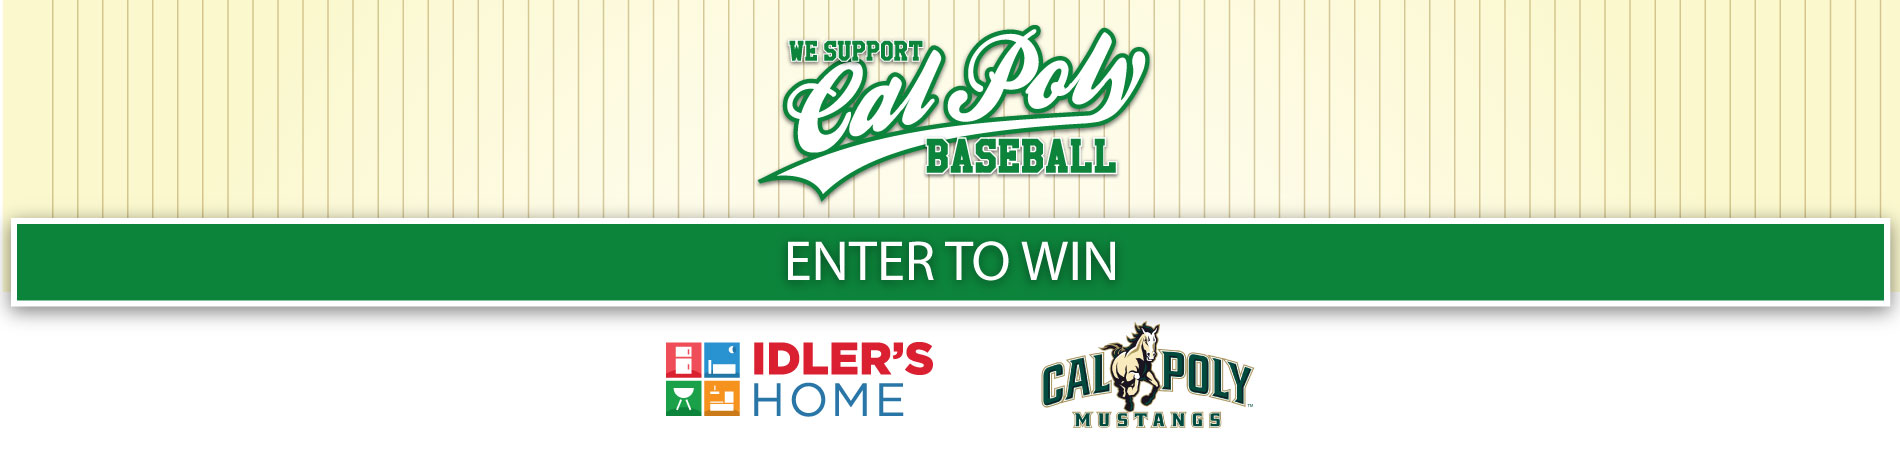 Furniture stores in san luis obispo - We Support Cal Poly Baseball